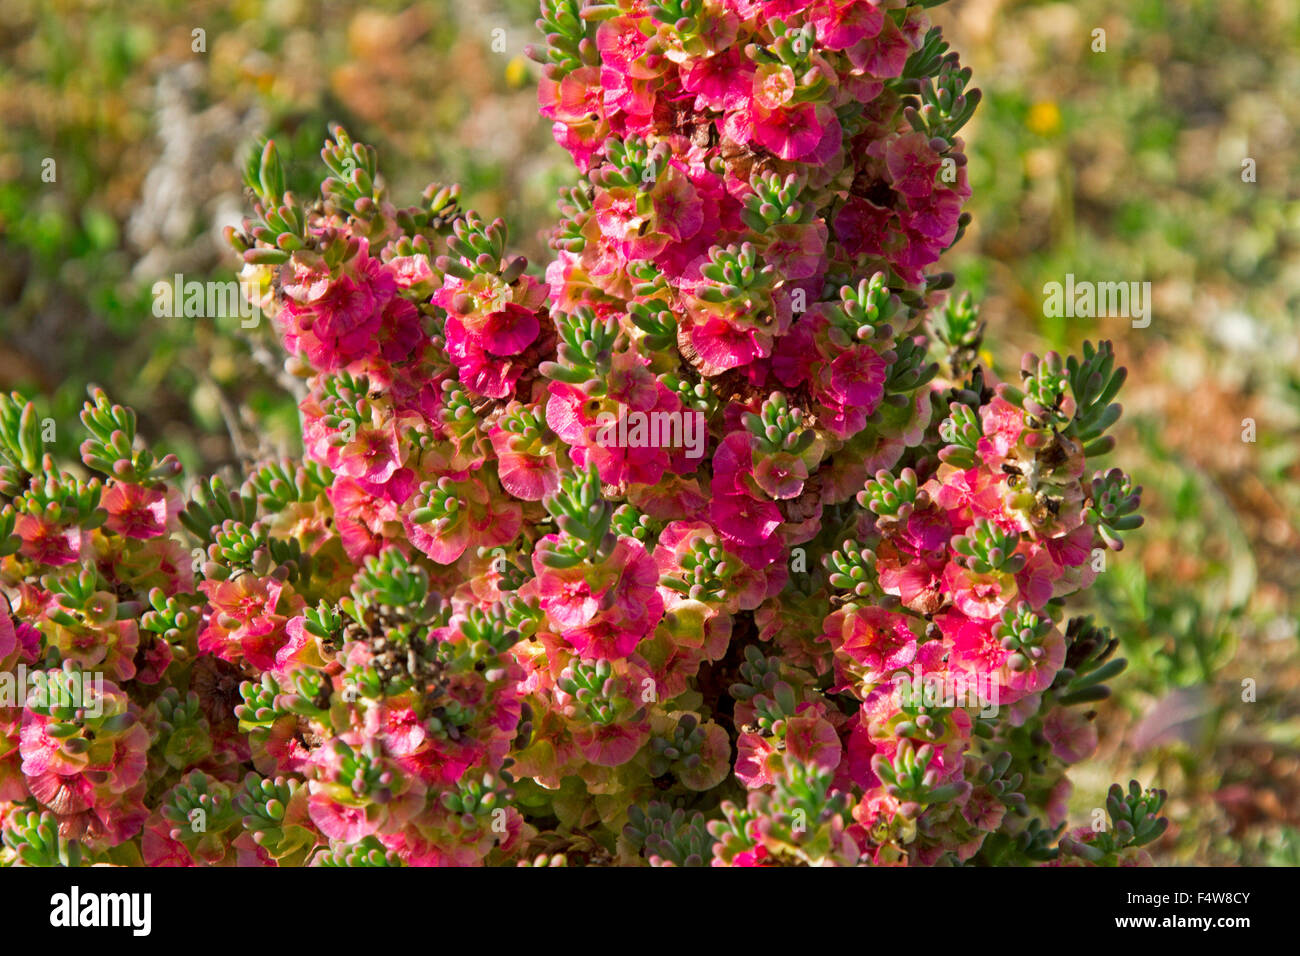 Cluster of bright pink red flowers leaves of maireana brevifolia cluster of bright pink red flowers leaves of maireana brevifolia syn kochia yanga bush australia bluebush in outback mightylinksfo